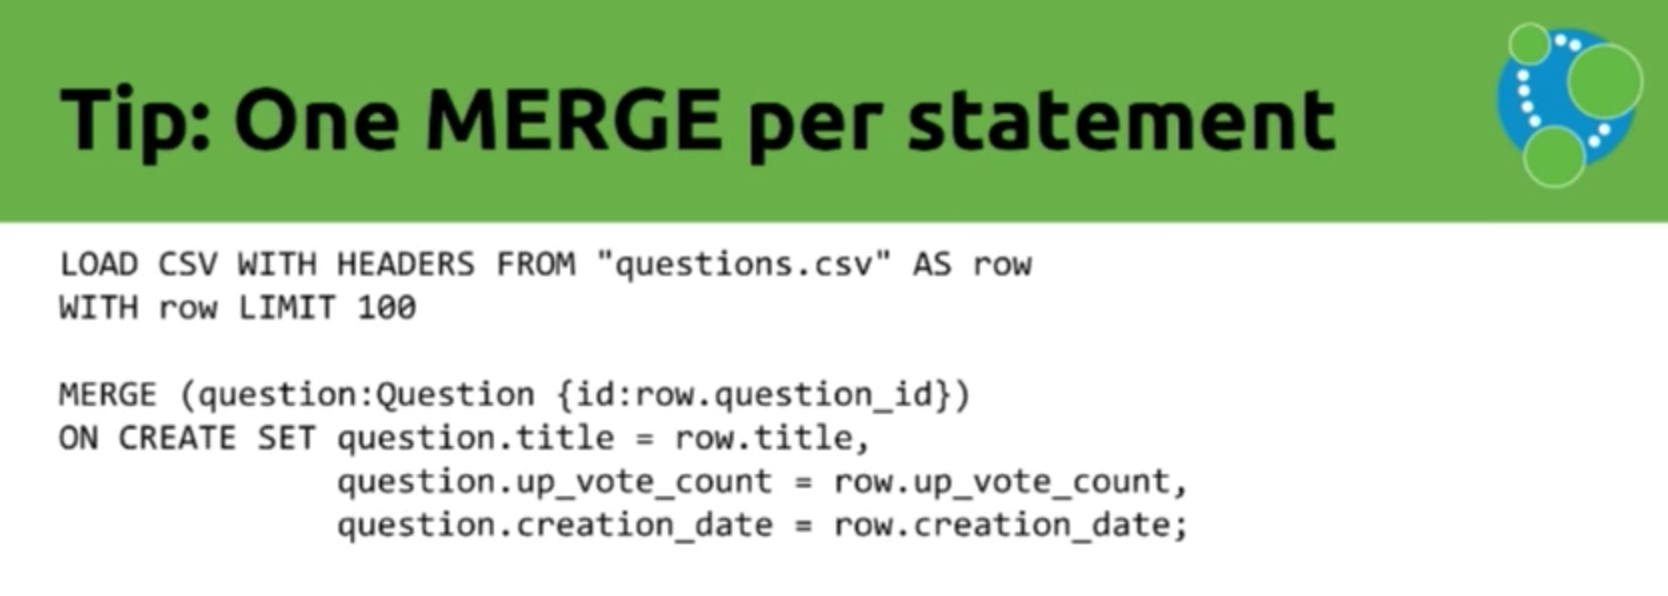 Data import tip: One MERGE per statement